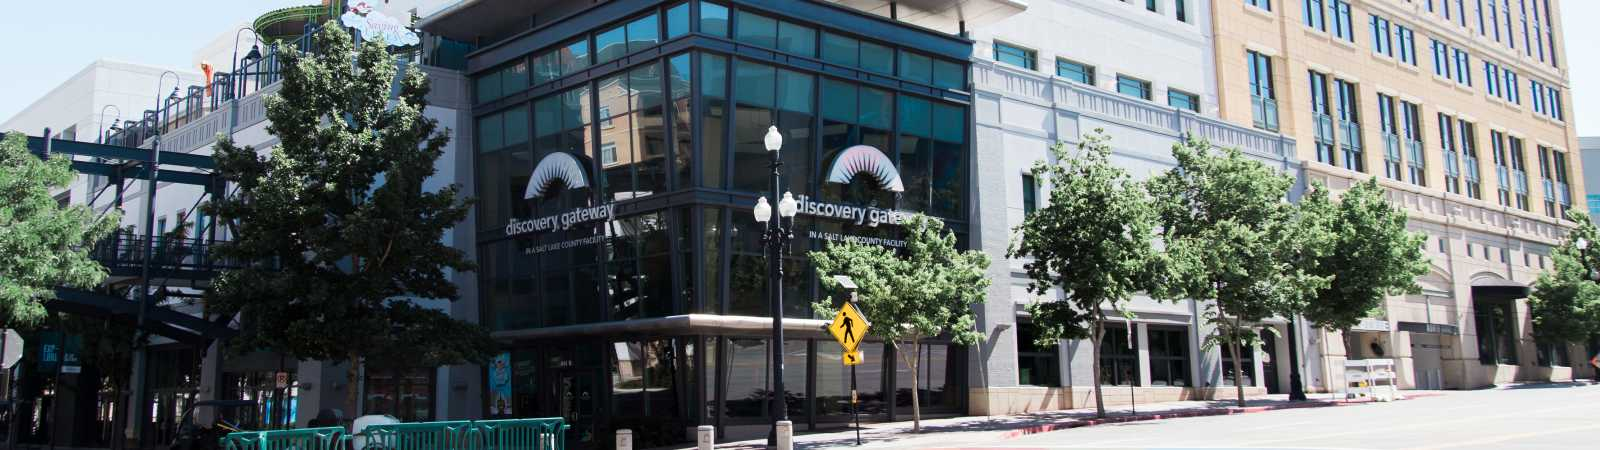 Discovery Gateway Children S Museum